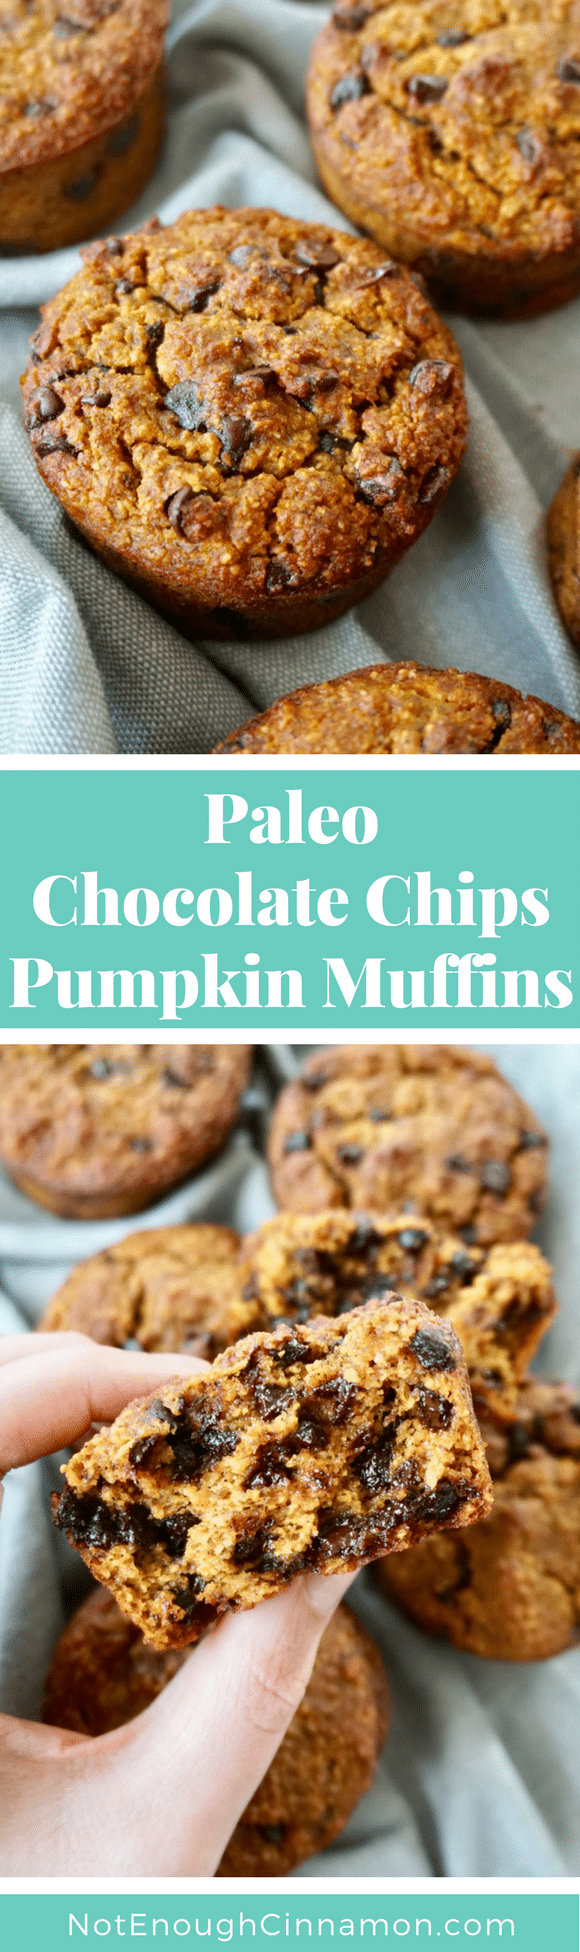 Paleo & Gluten-Free Pumpkin Chocolate Chips Muffins - these fall-inspired muffins are TO DIE FOR! Perfectly moist and so tasty - forget Starbucks and whip up a batch of these divine mini cakes in your kitchen  #muffinrecipes, #paleomuffins, #paleobaking, #pumpkinmuffins